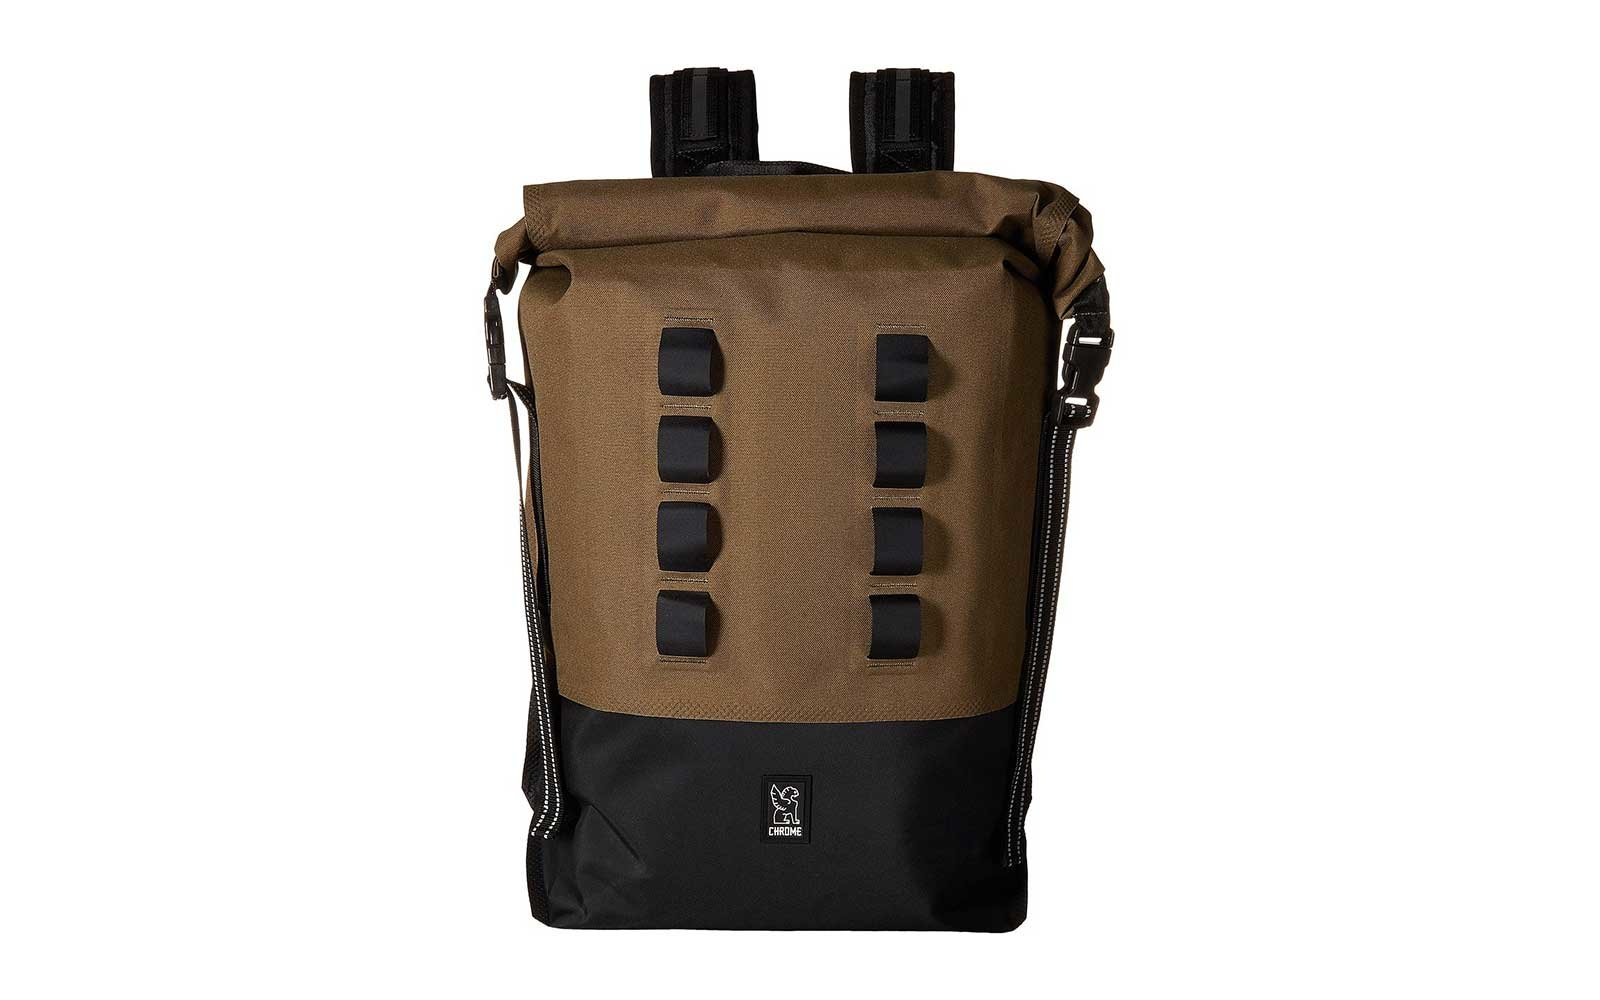 9fef56d7e3fa Brown rolltop waterproof backpack from Chrome Urban